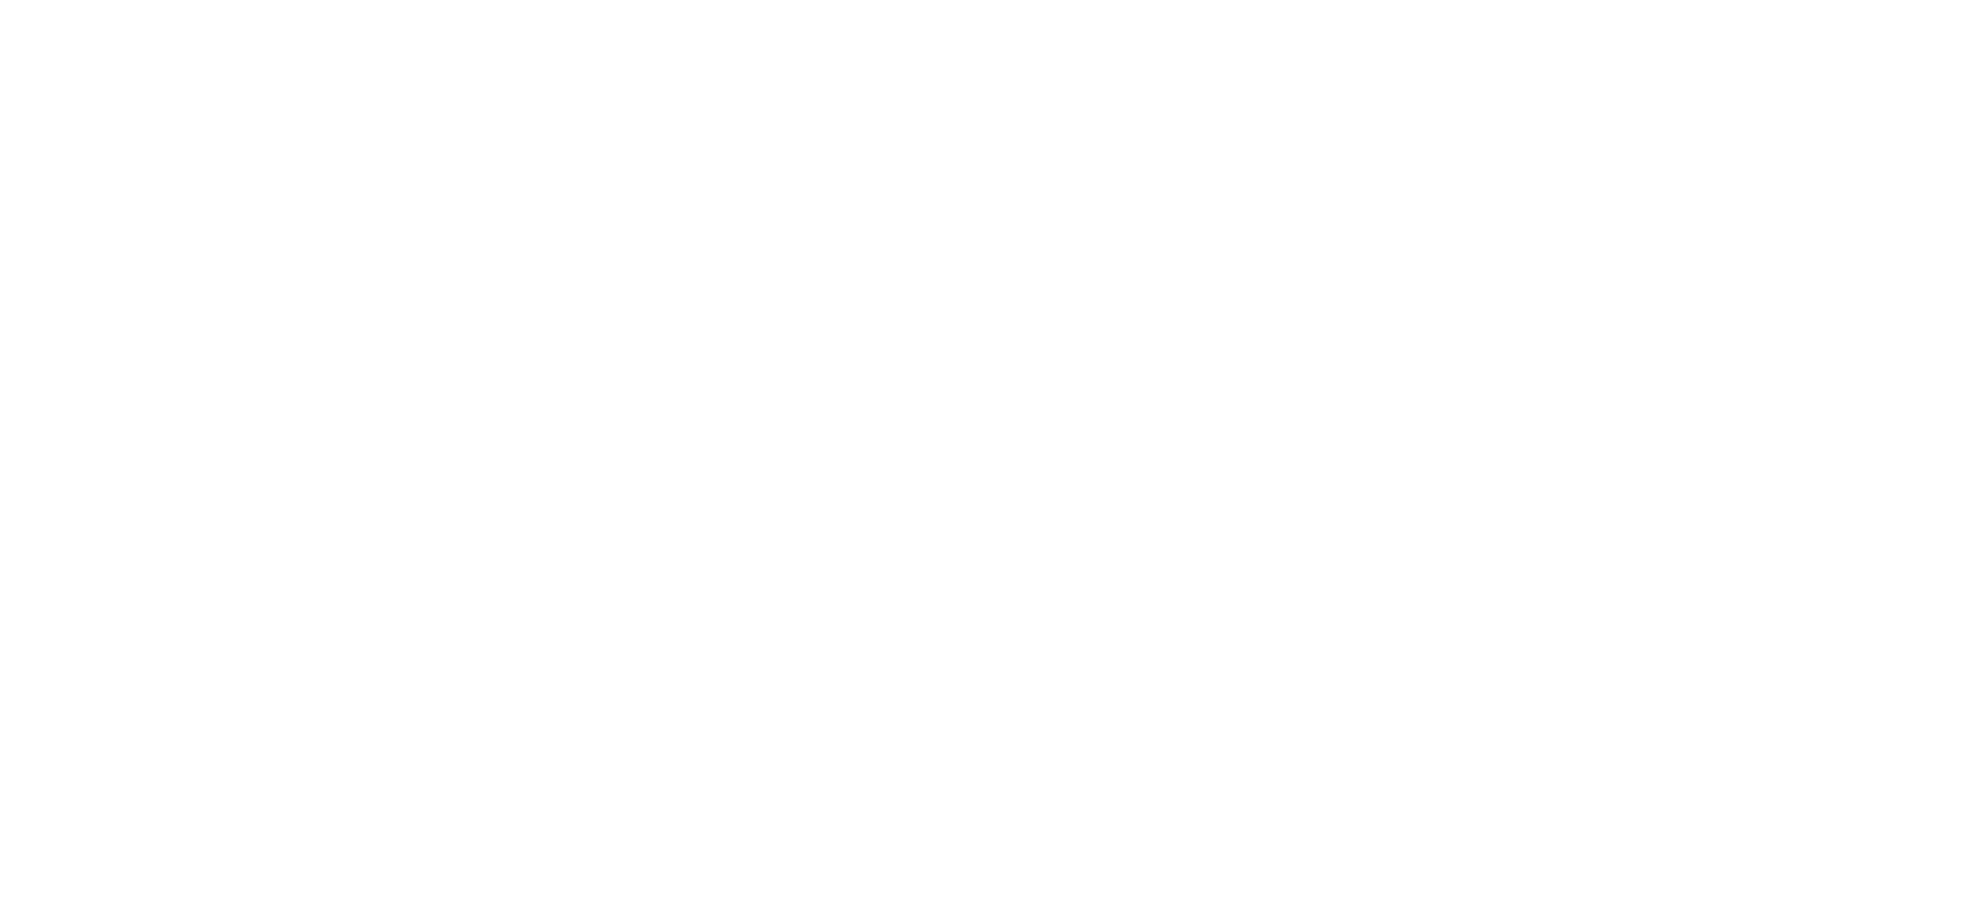 Global Human Consultants blanco